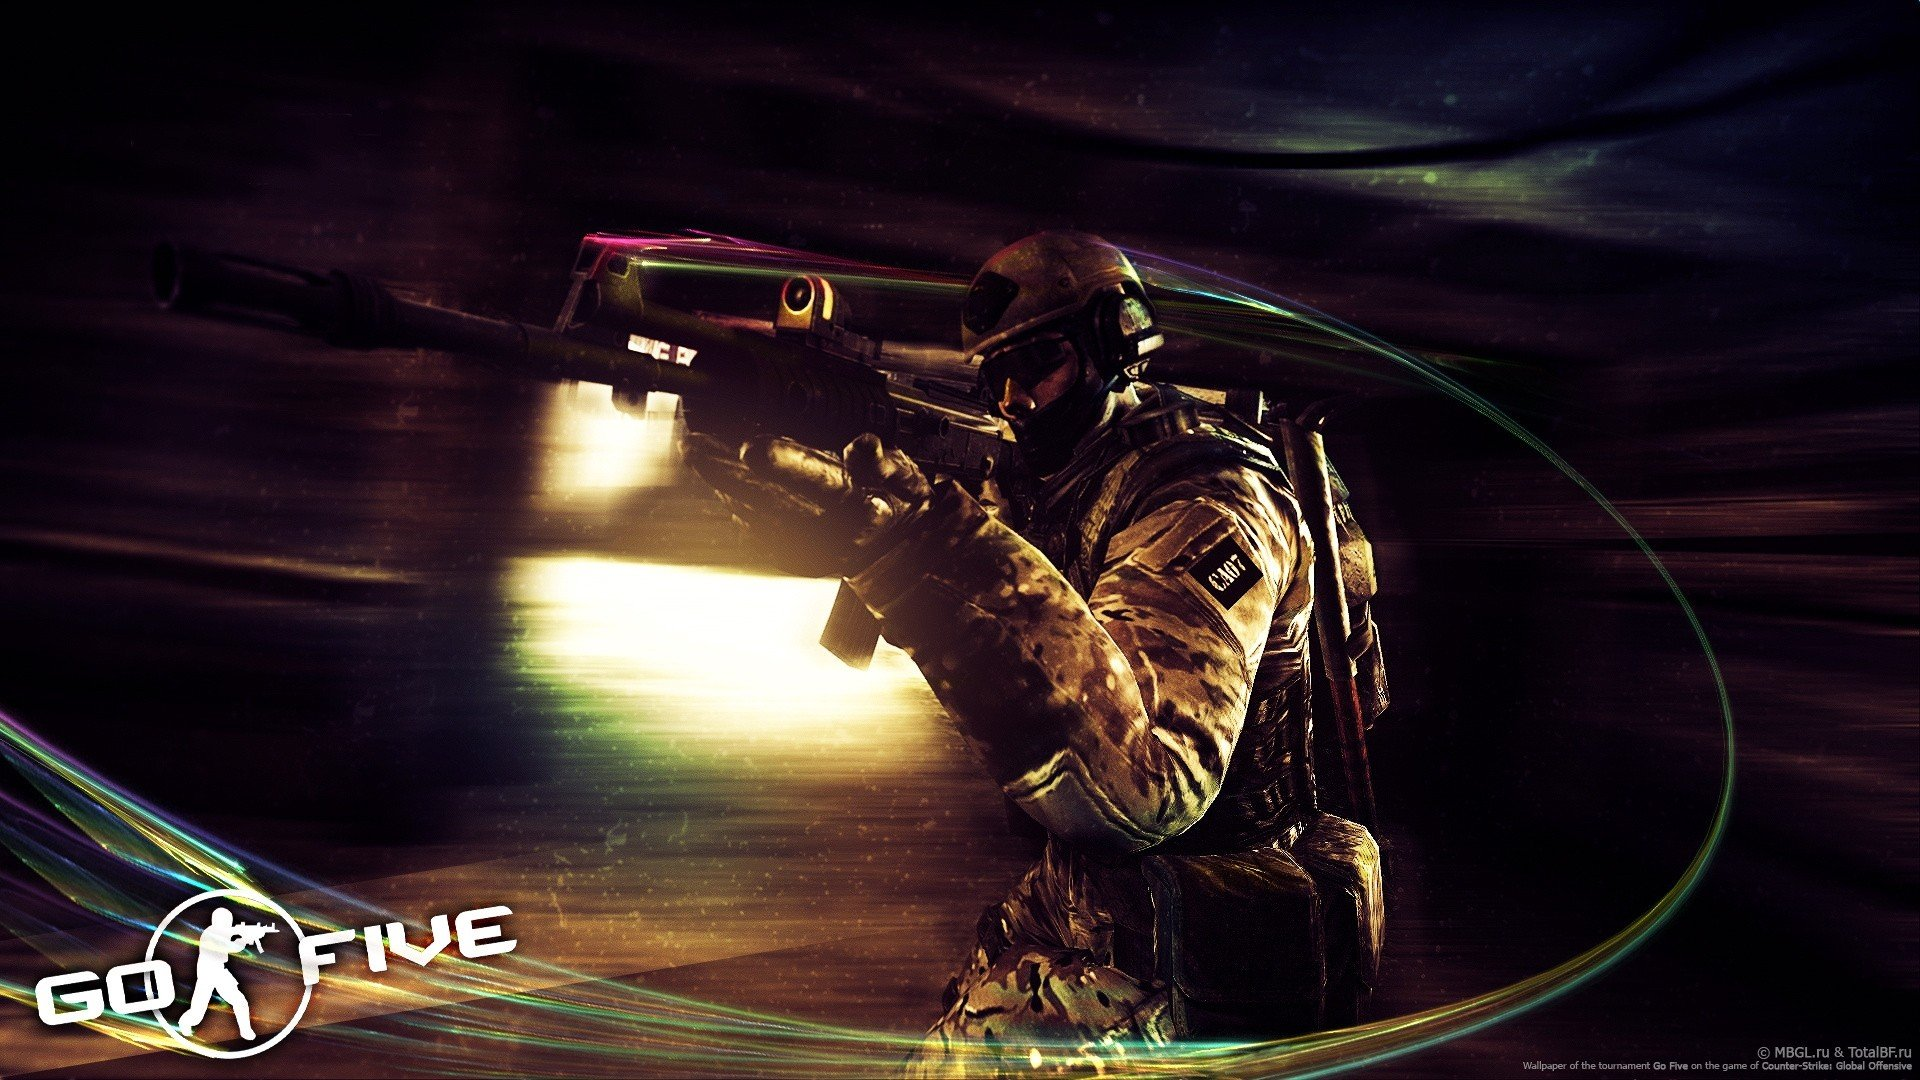 counter strike global offensive 1920x1080 wallpaper Car Pictures 1920x1080